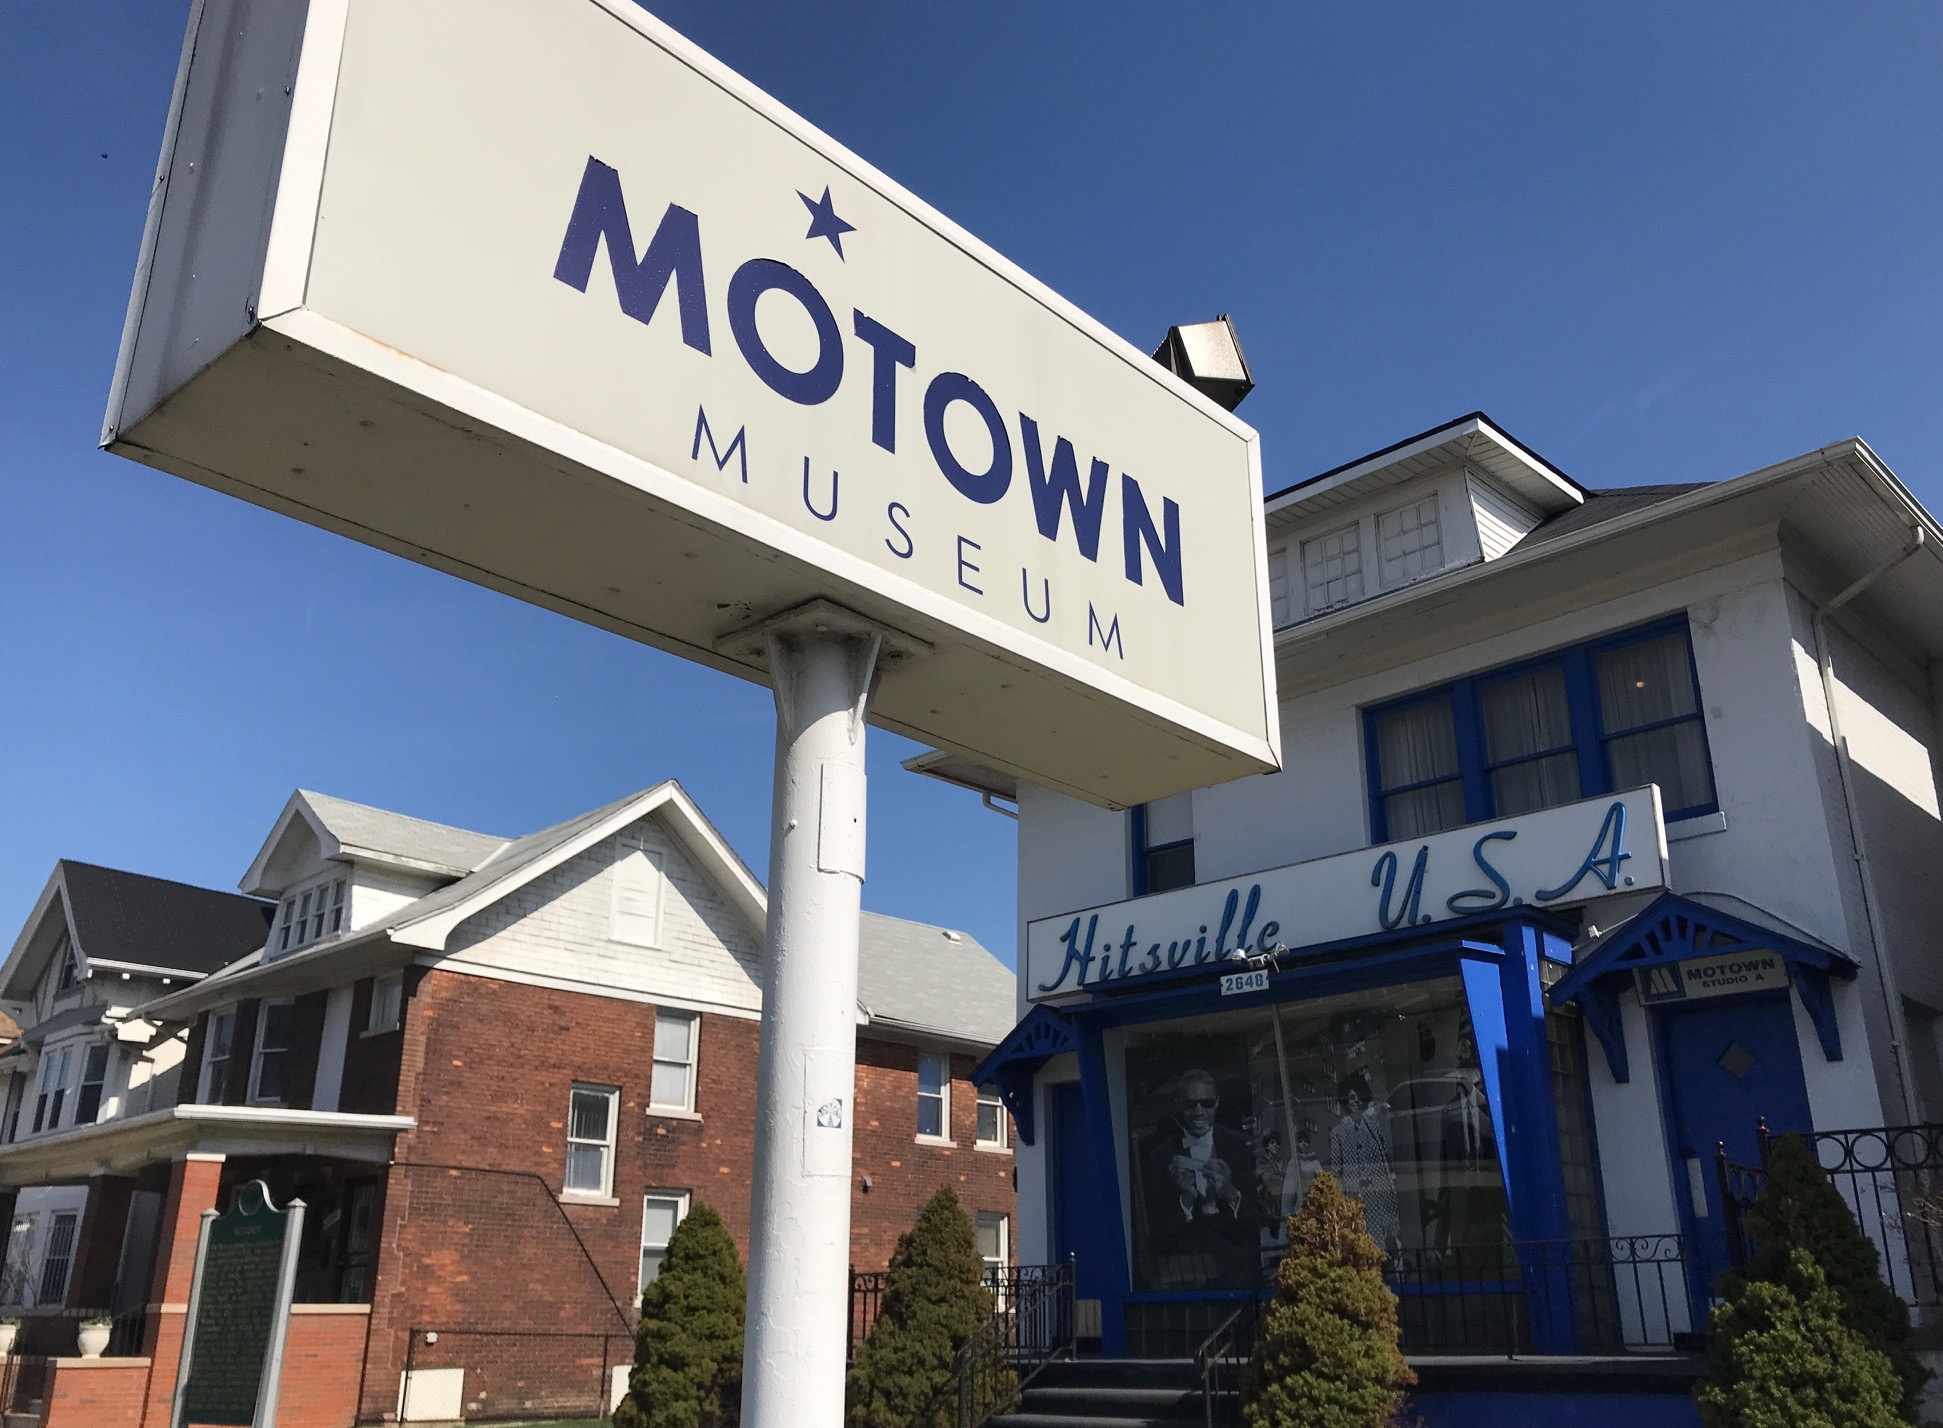 The Motown Museum in Detroit Picture: Yvette Caster